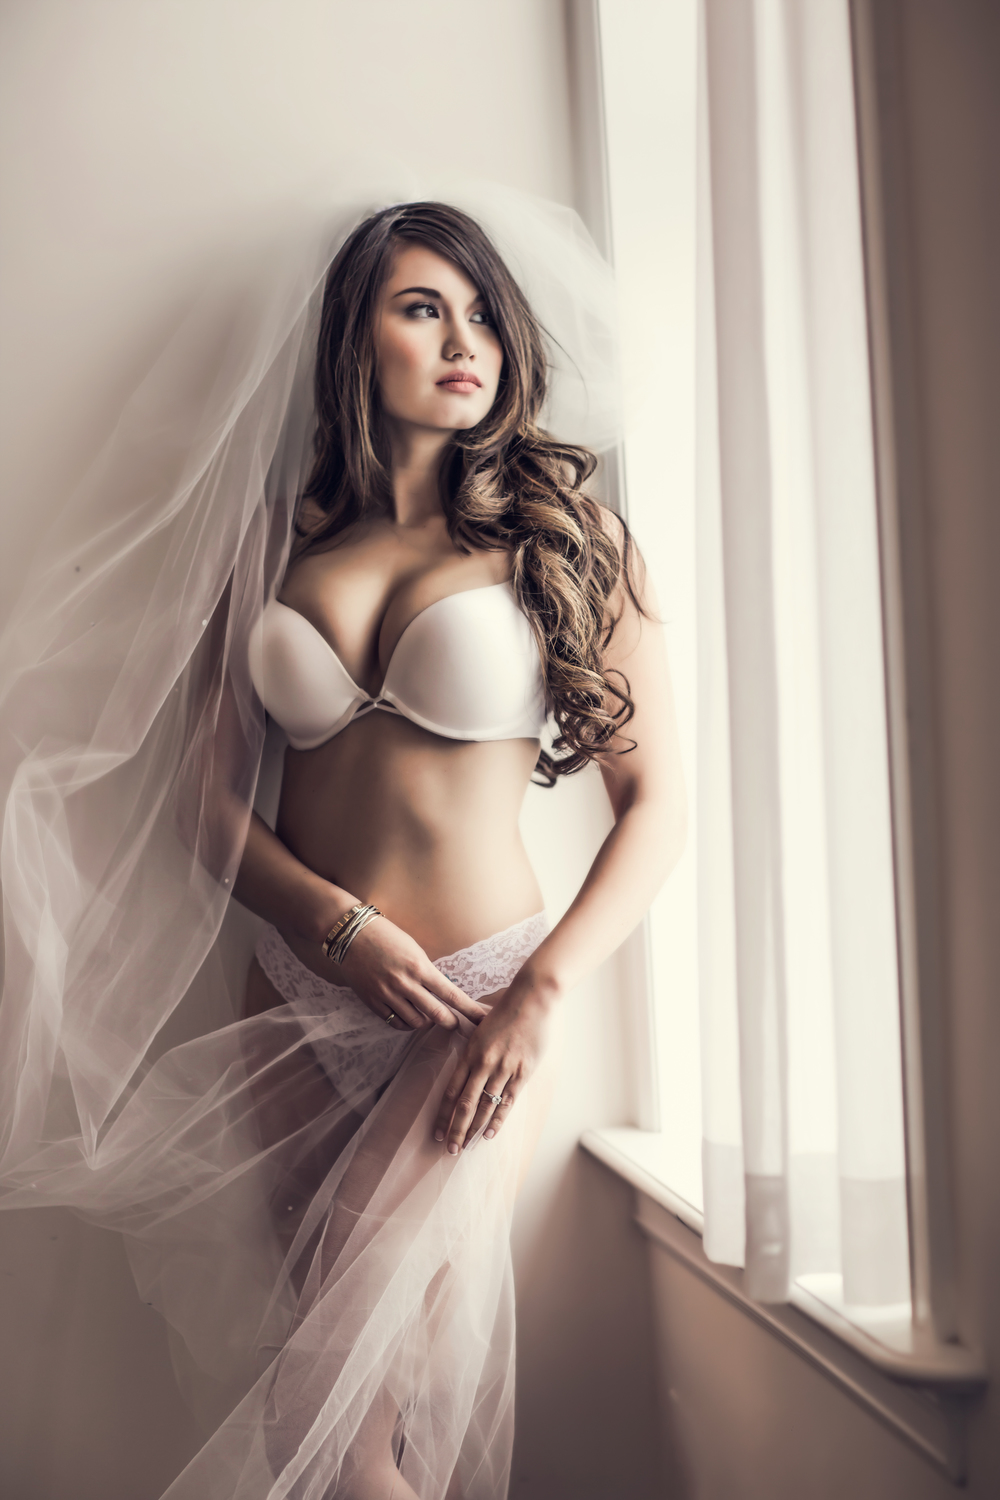 Soft and feminine in this classic bridal boudoir session. Our studio provides a variety of lengths in veil. Our client chose a cathedral veil for high drama. Wardrobe: Victoria's Secret and Nordstrom.